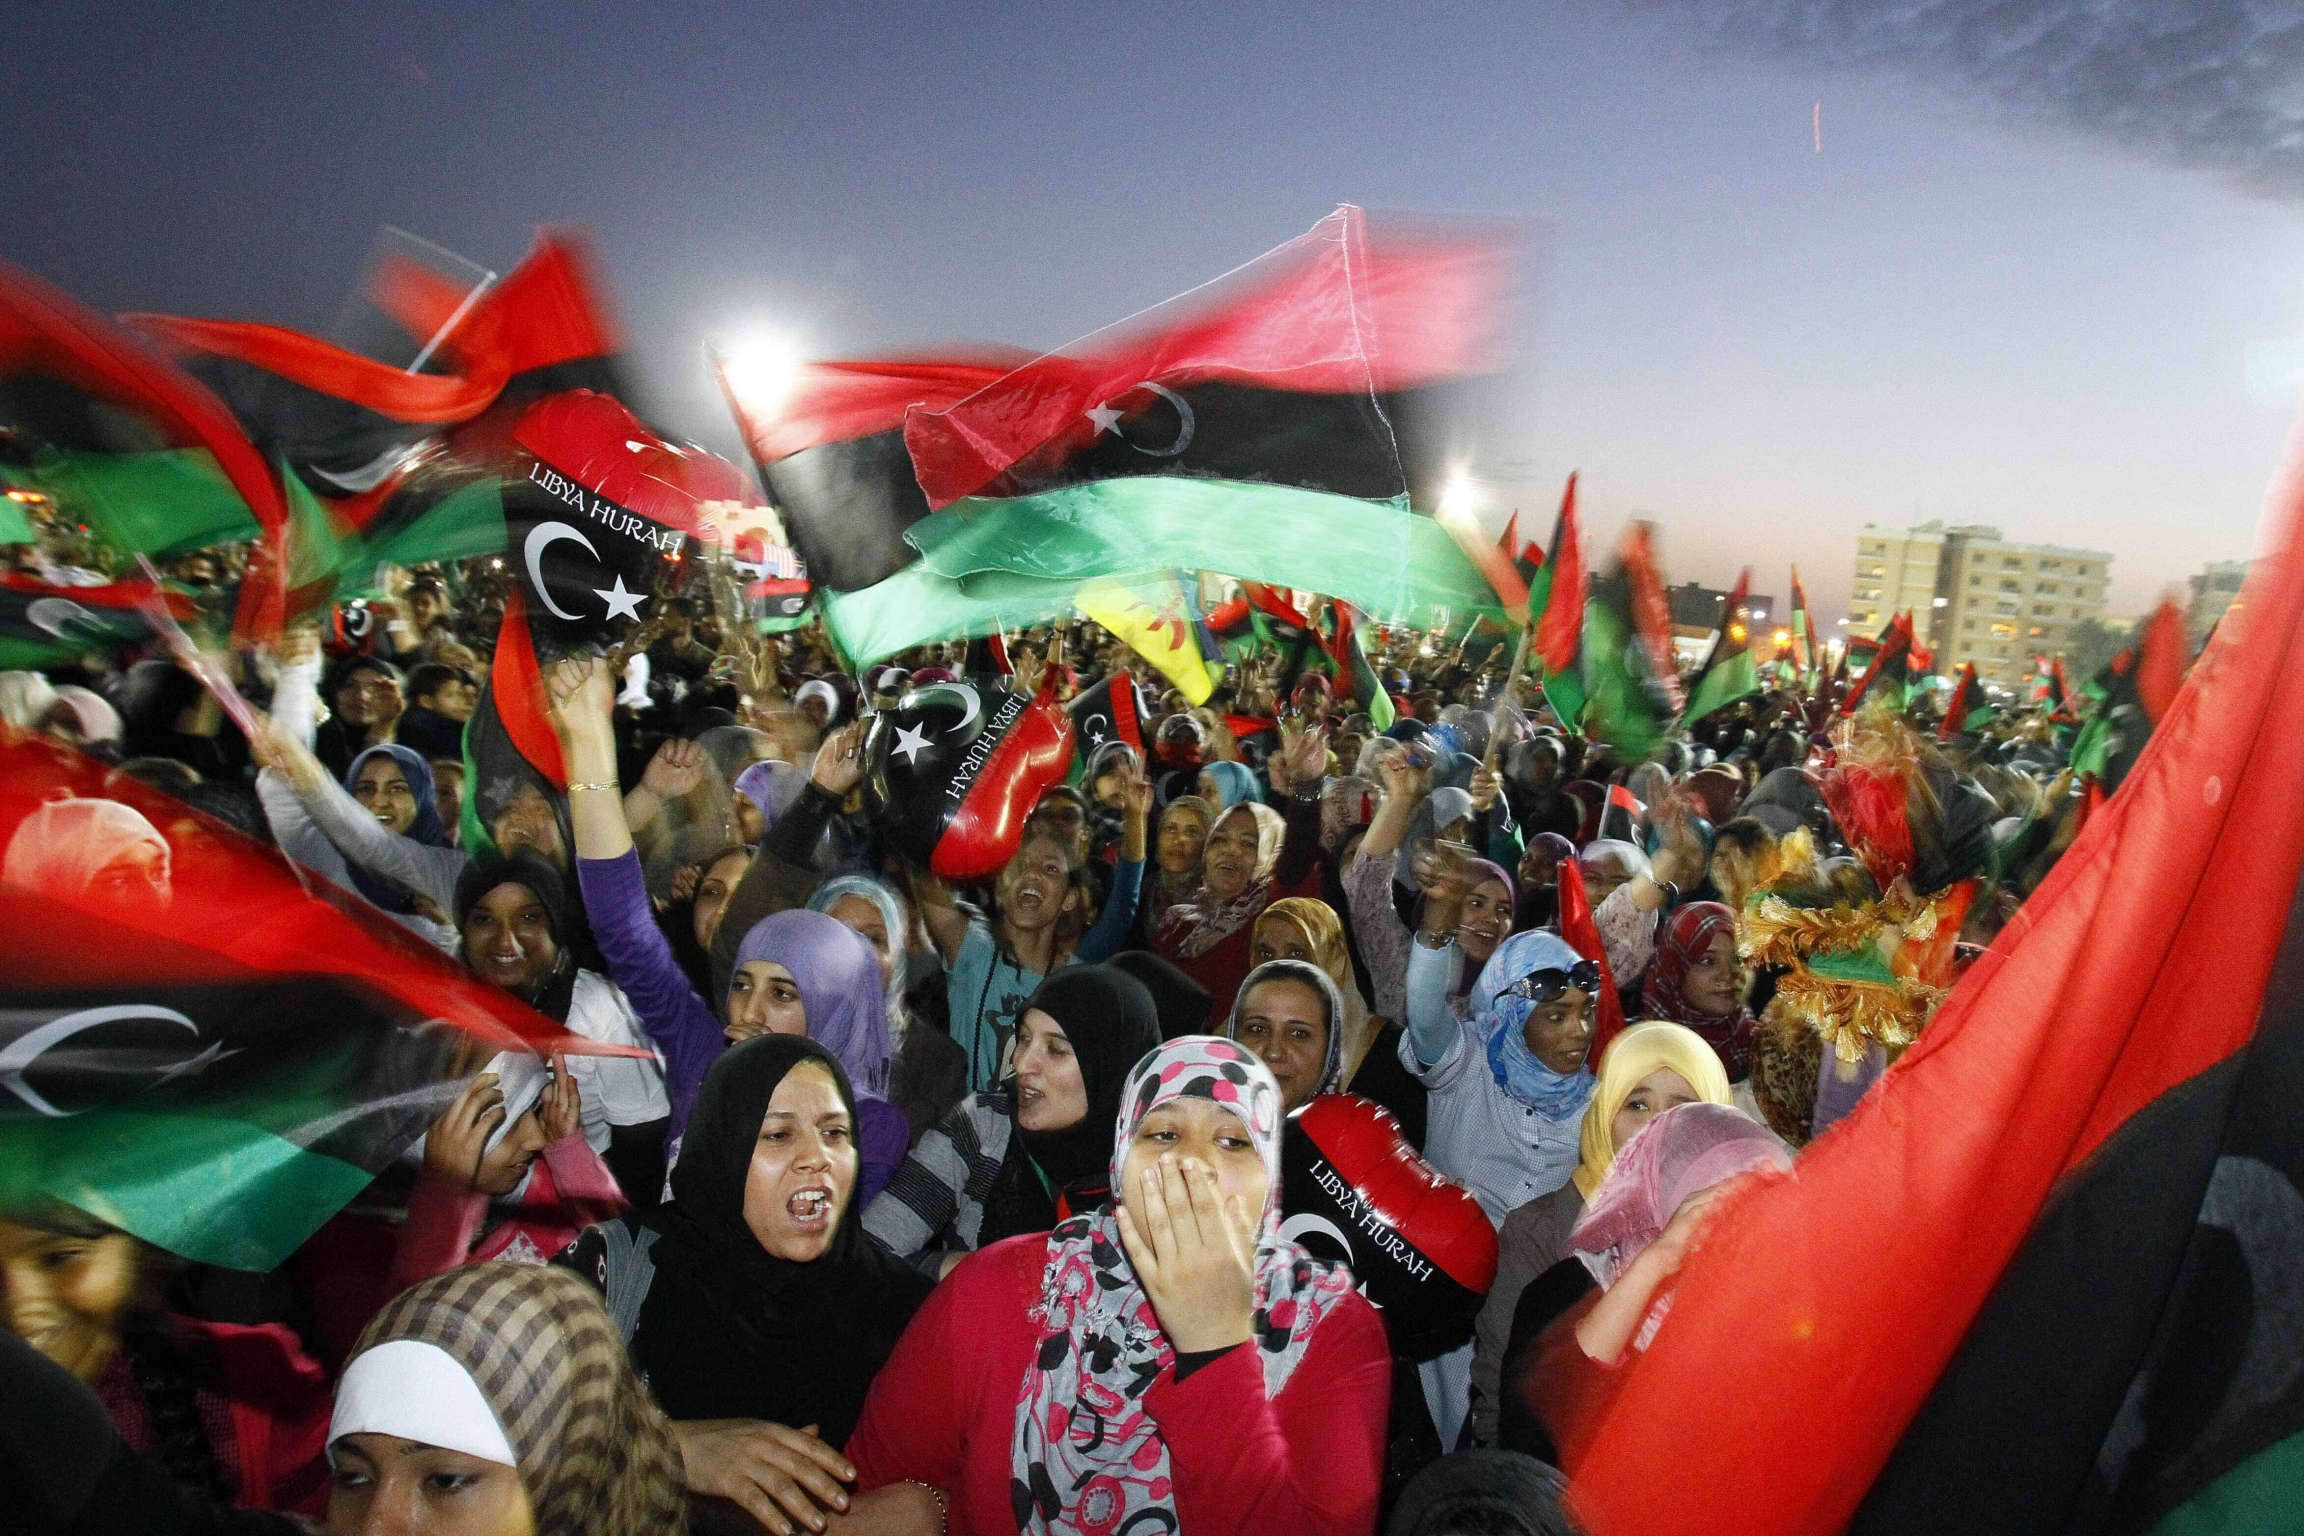 In this Sunday Oct. 23, 2011 file photo, Libyan celebrate at Saha Kish Square in Benghazi, Libya, as Libya's transitional government declares the official liberation of Libya after months of bloodshed that culminated in the death of longtime leader Moamma